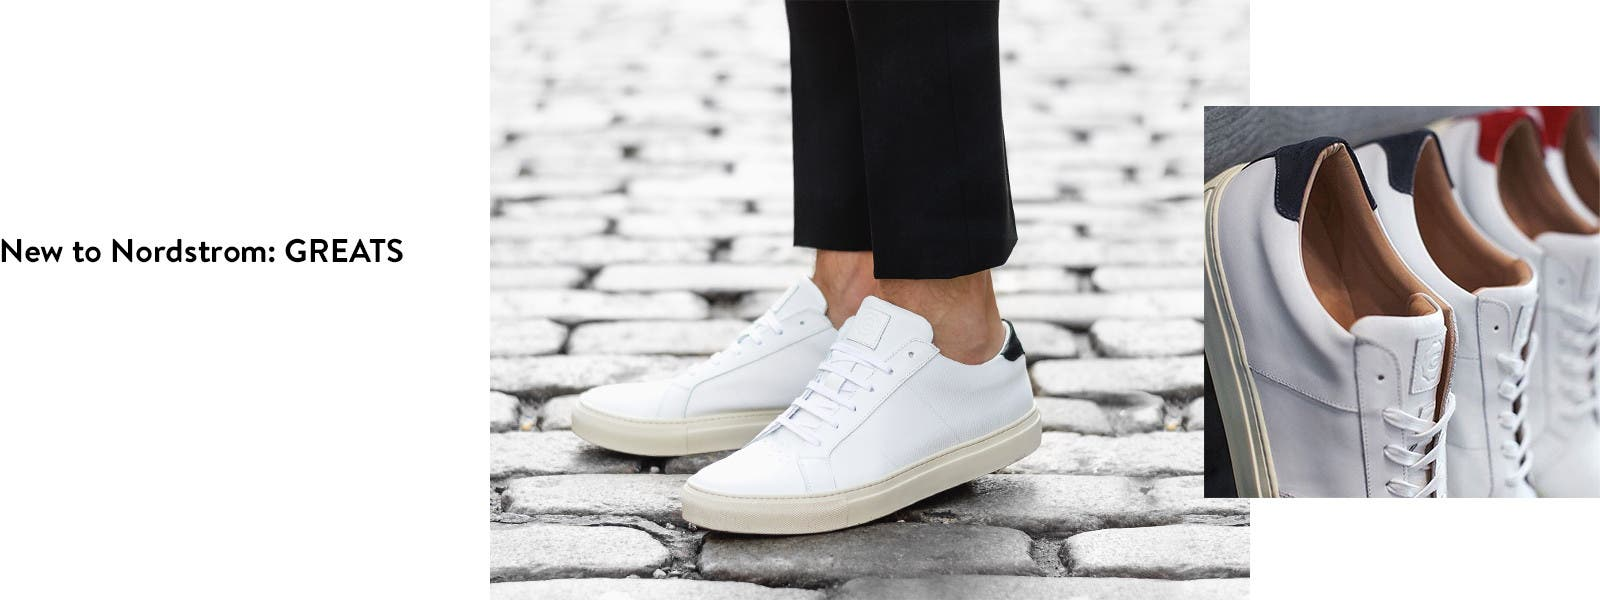 New to Nordstrom: Greats sneakers for men.